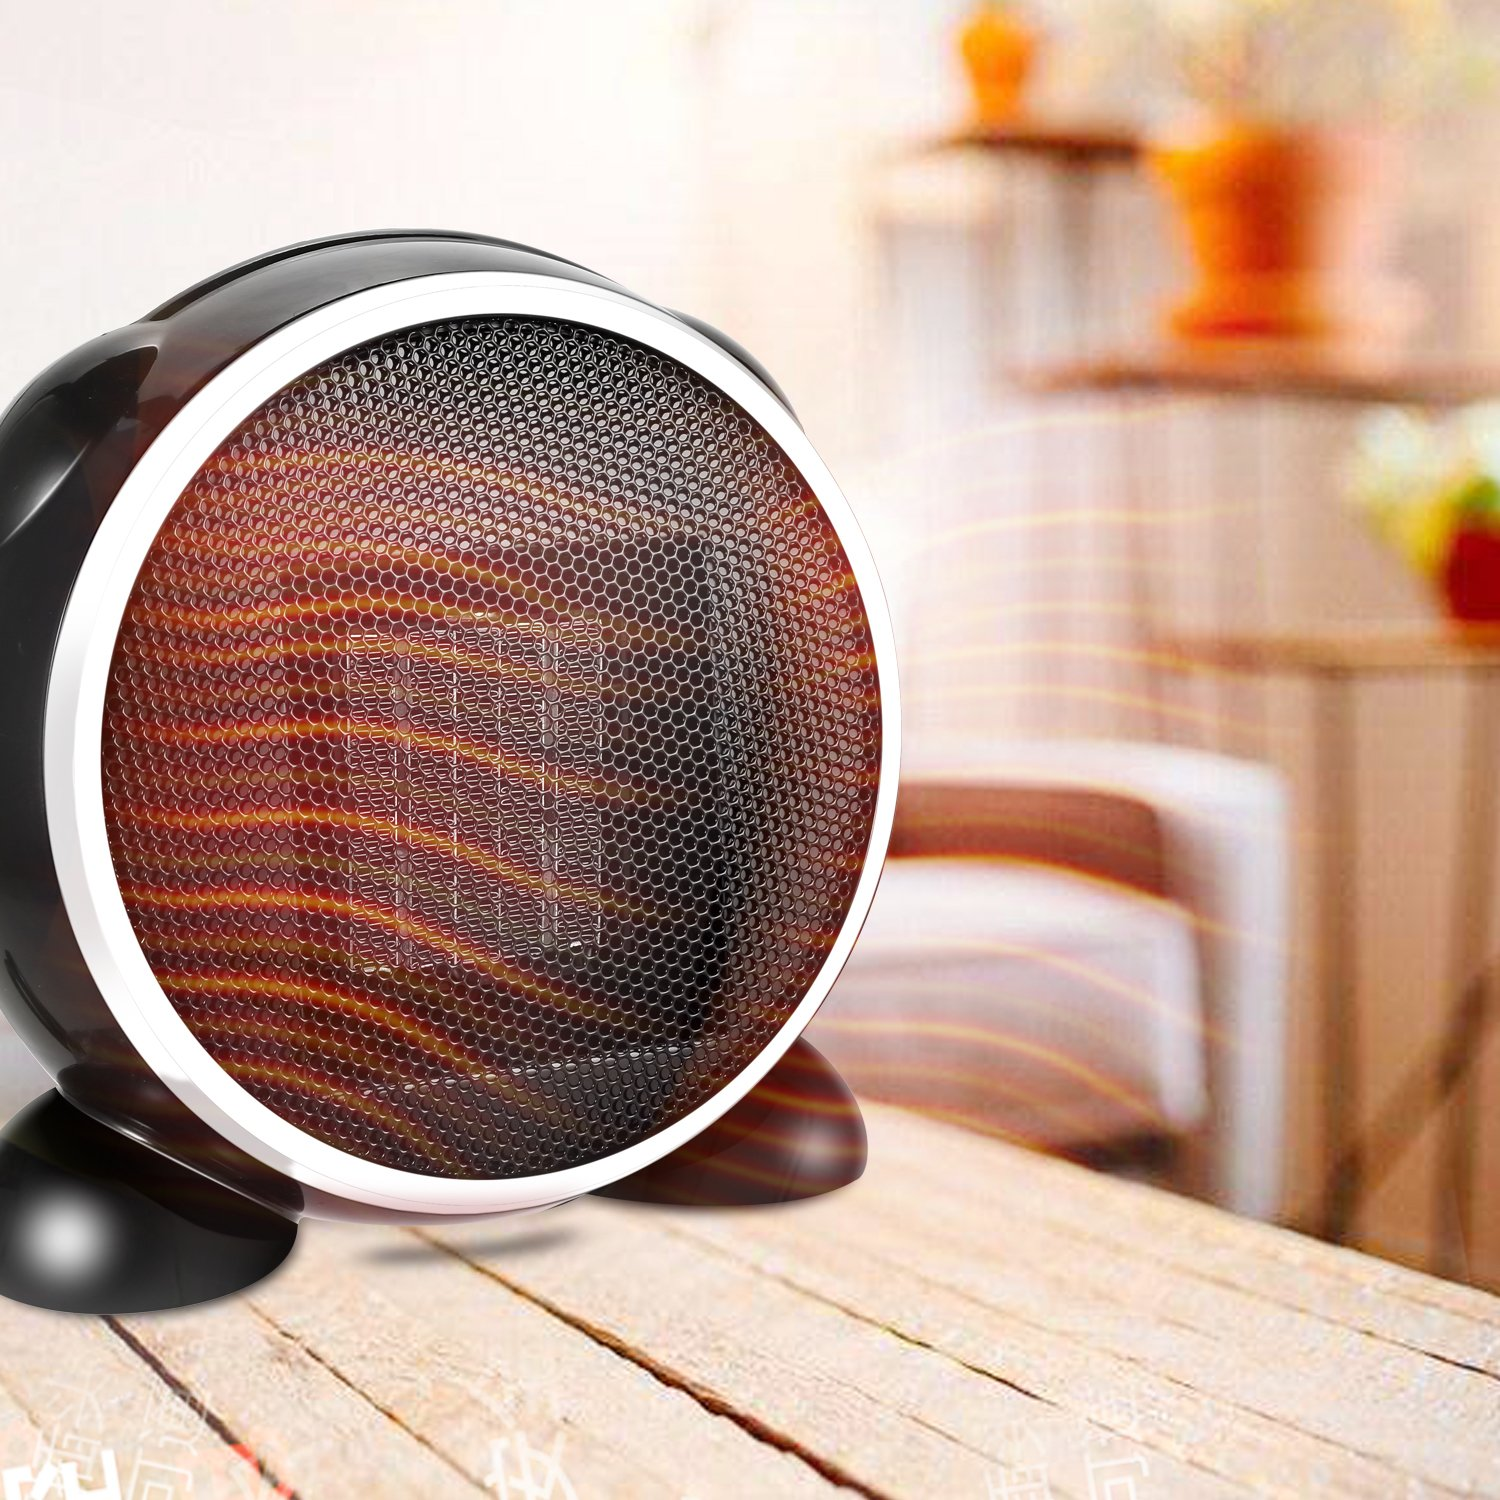 Kaluo Portable Mini Space Heater, 500W Oscillating Fan Heater with Over-Heating&Tip-Over Protection for Office Home Desk (Black)